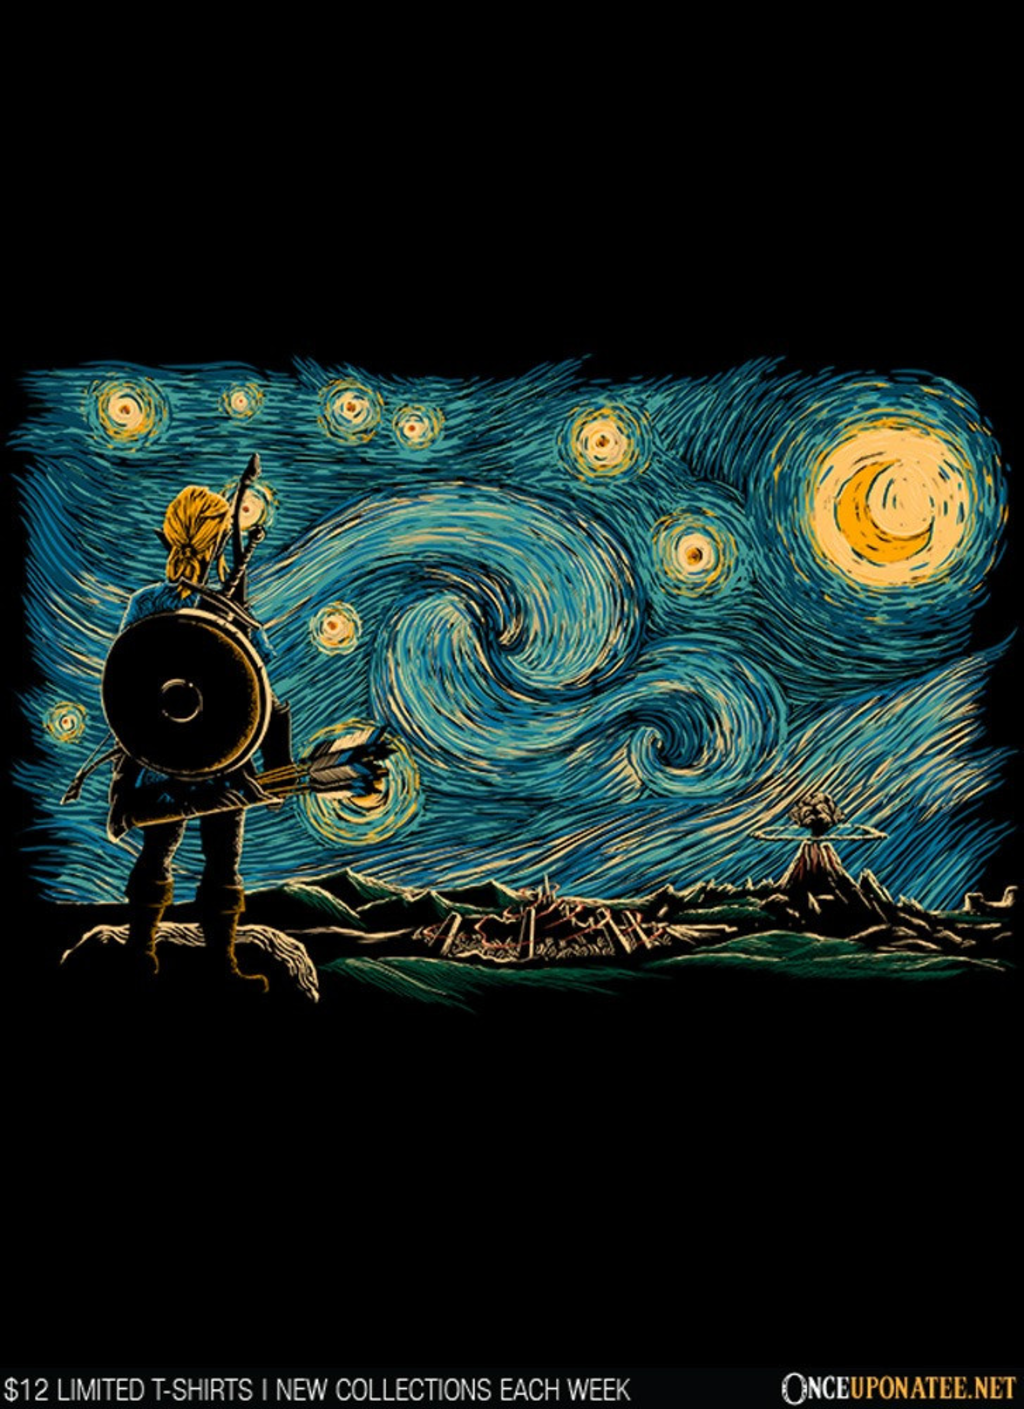 Once Upon a Tee: Starry Wild